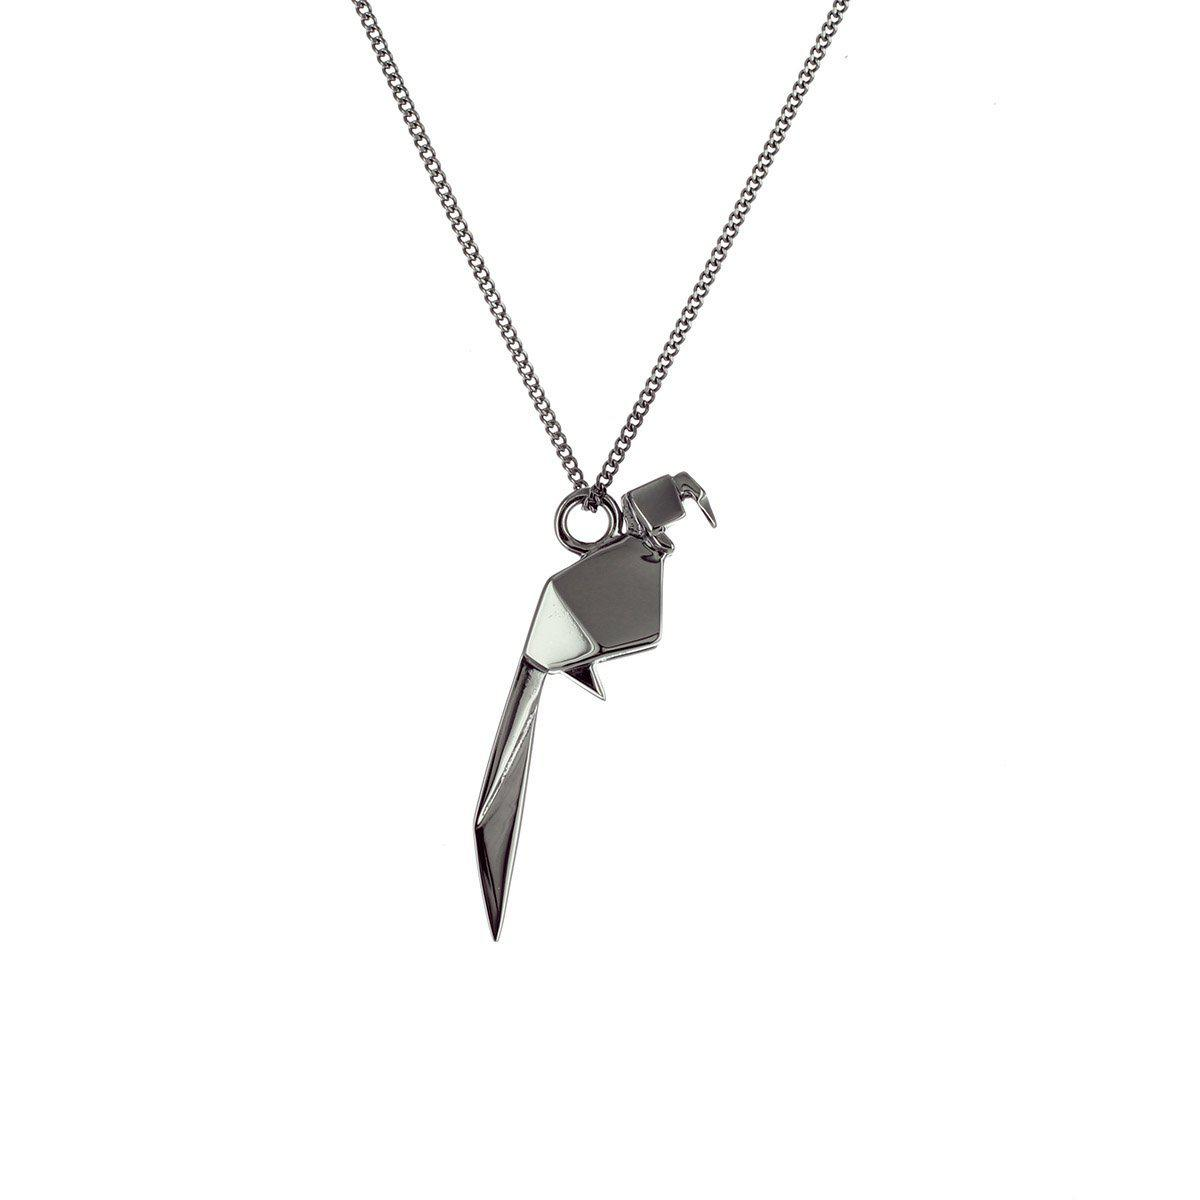 Origami Jewellery Sterling Silver Mini Parrot Origami Necklace 0yoGr2Wmn